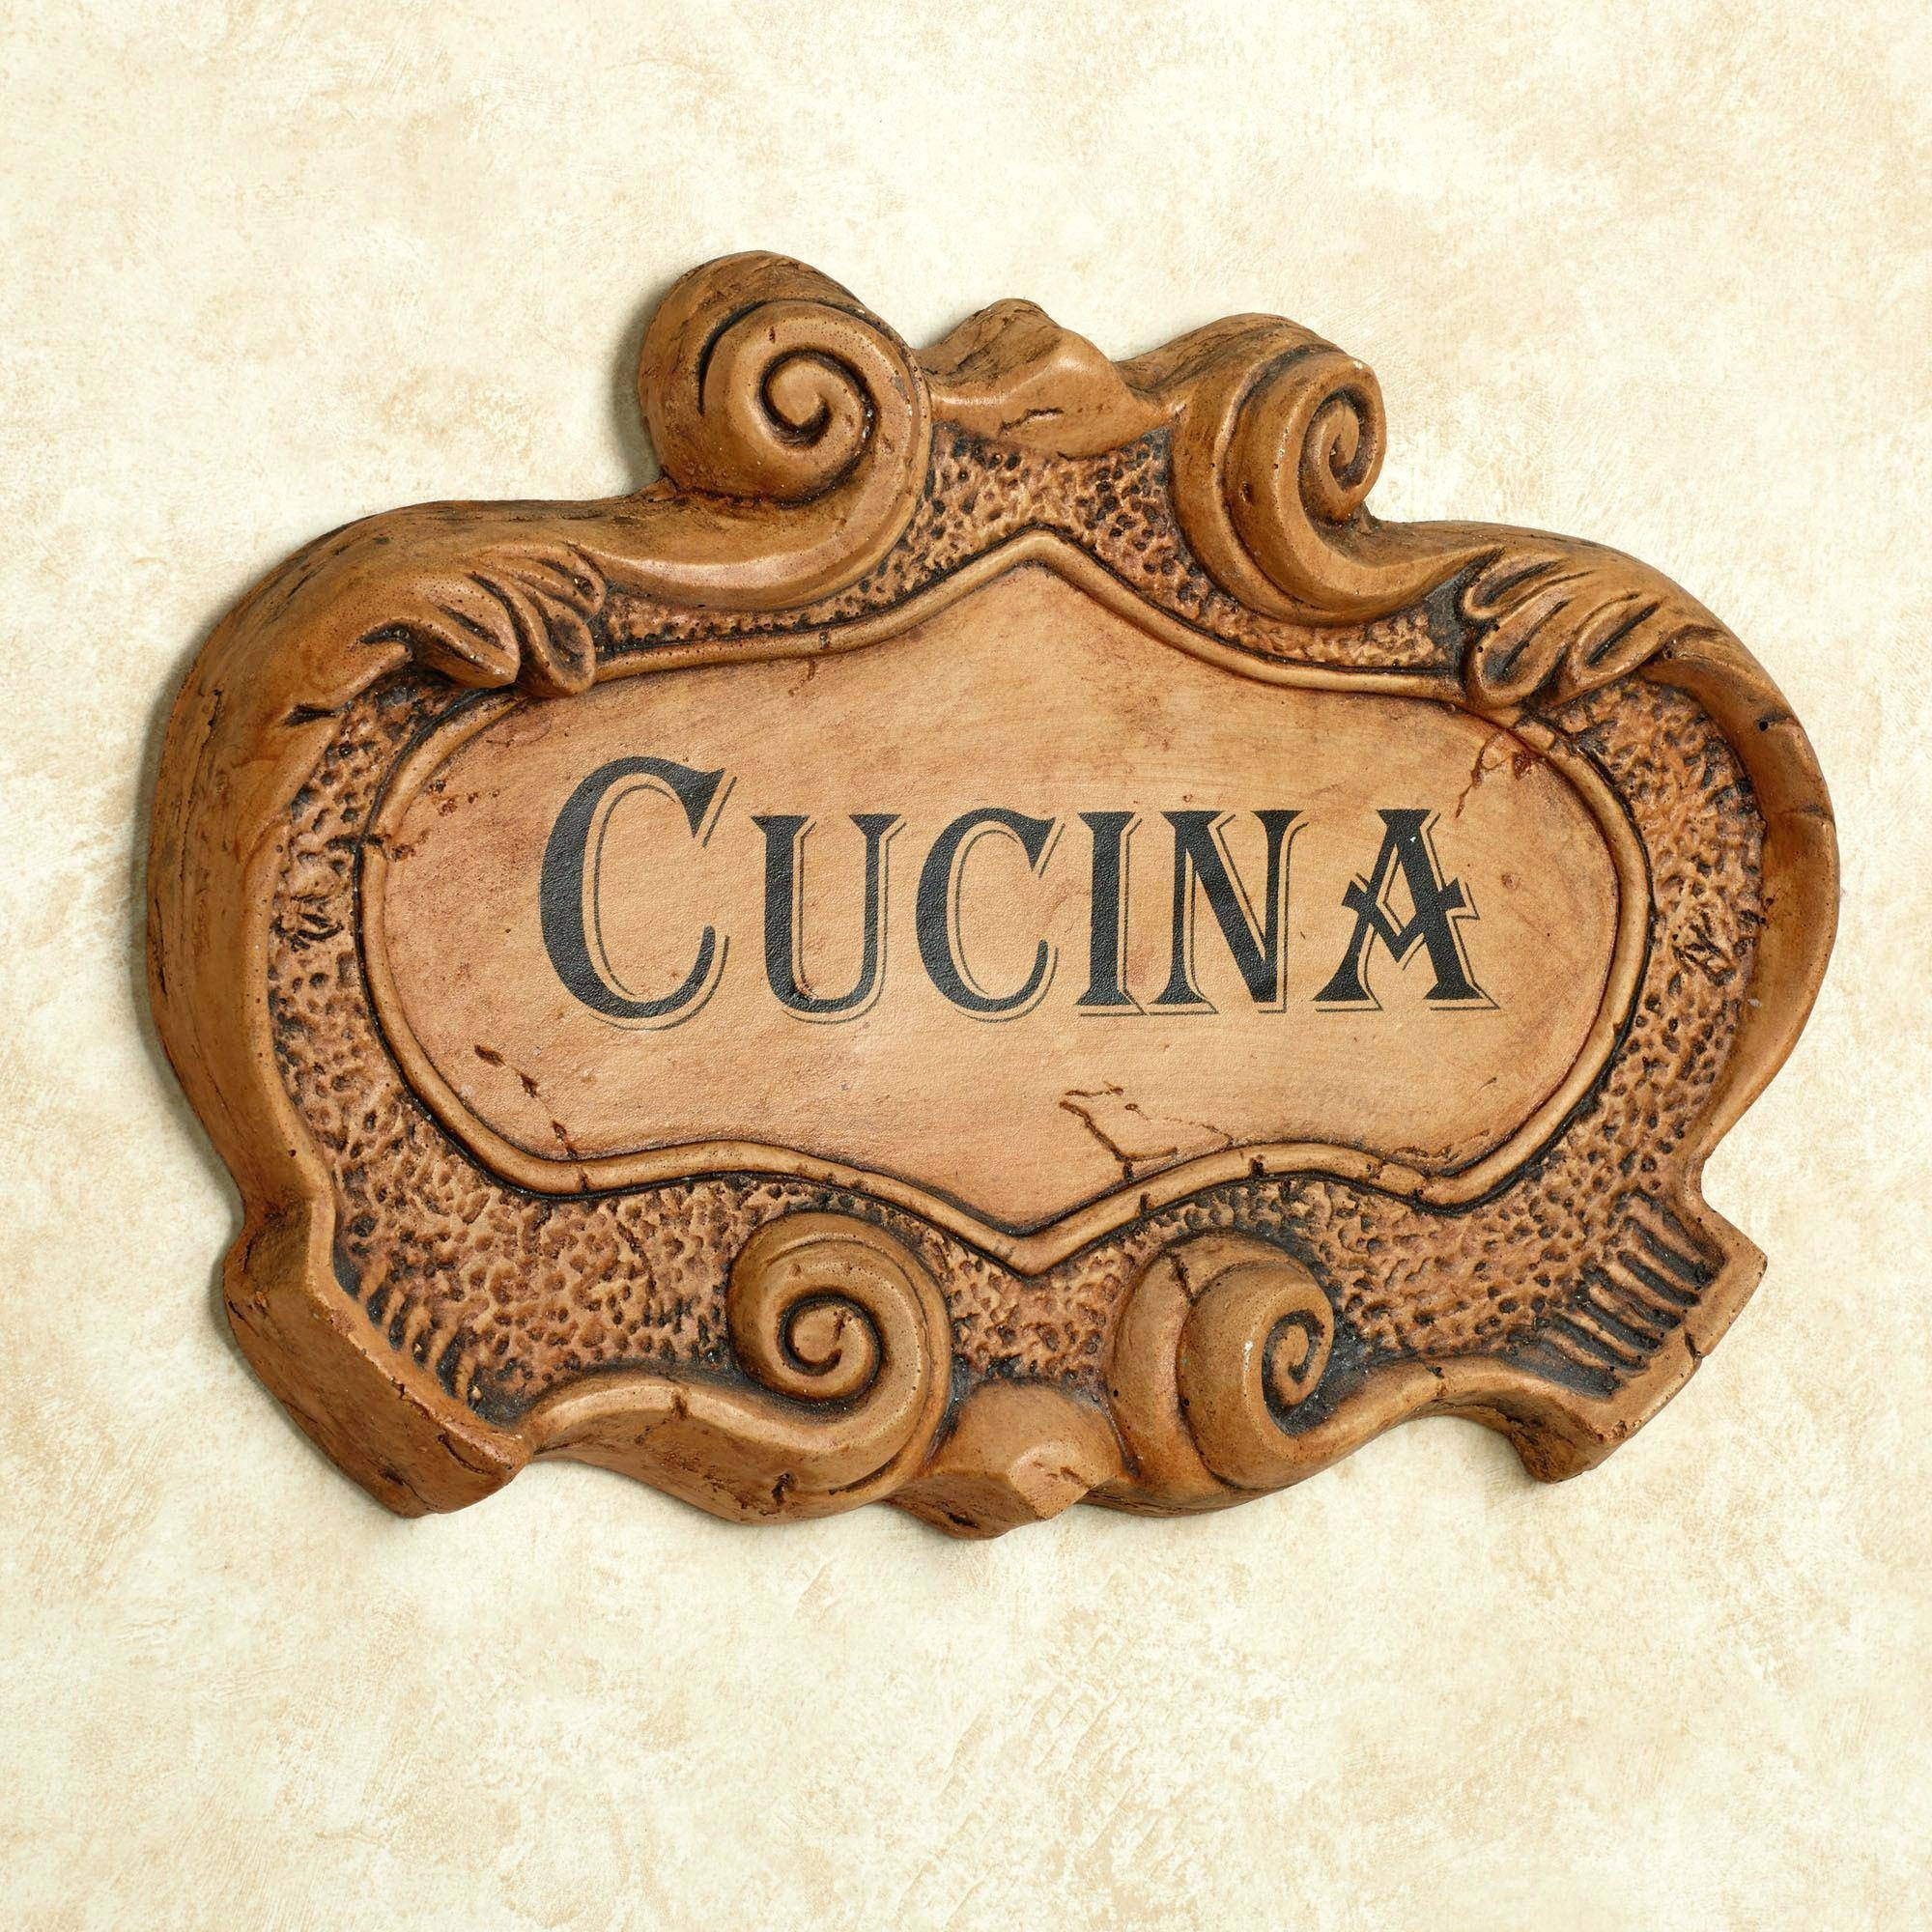 Wall Decor : Modern Dress Up Your Walls With Pieces From This Pertaining To Newest Cucina Wall Art Decors (View 1 of 25)